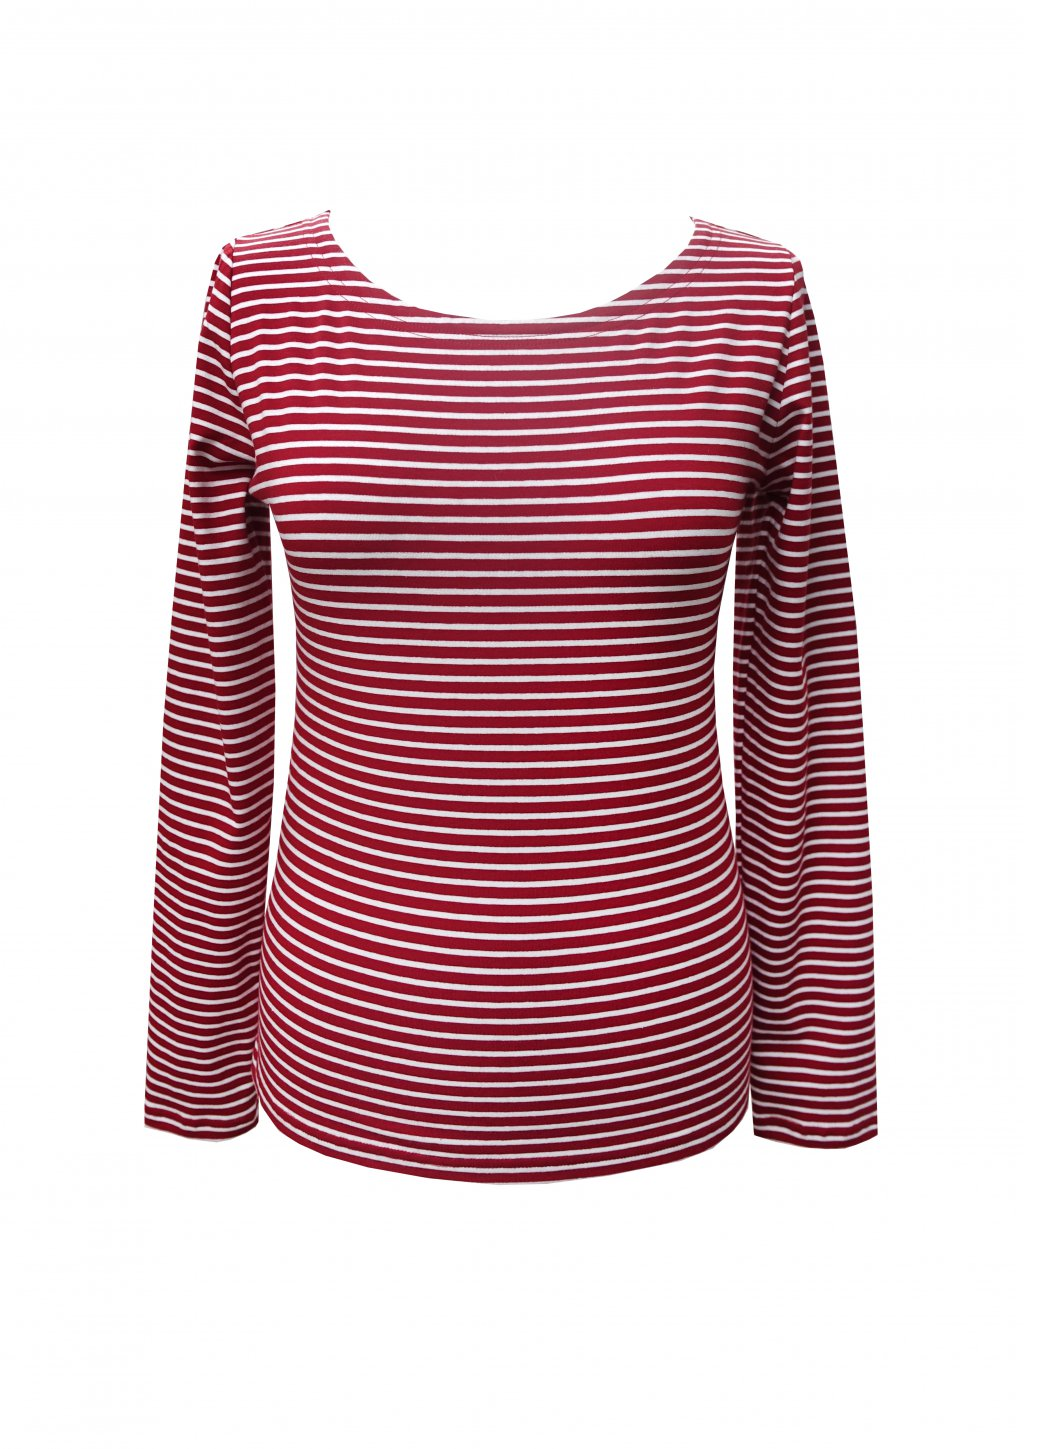 Long sleeve T-shirt Red Striped Female dress